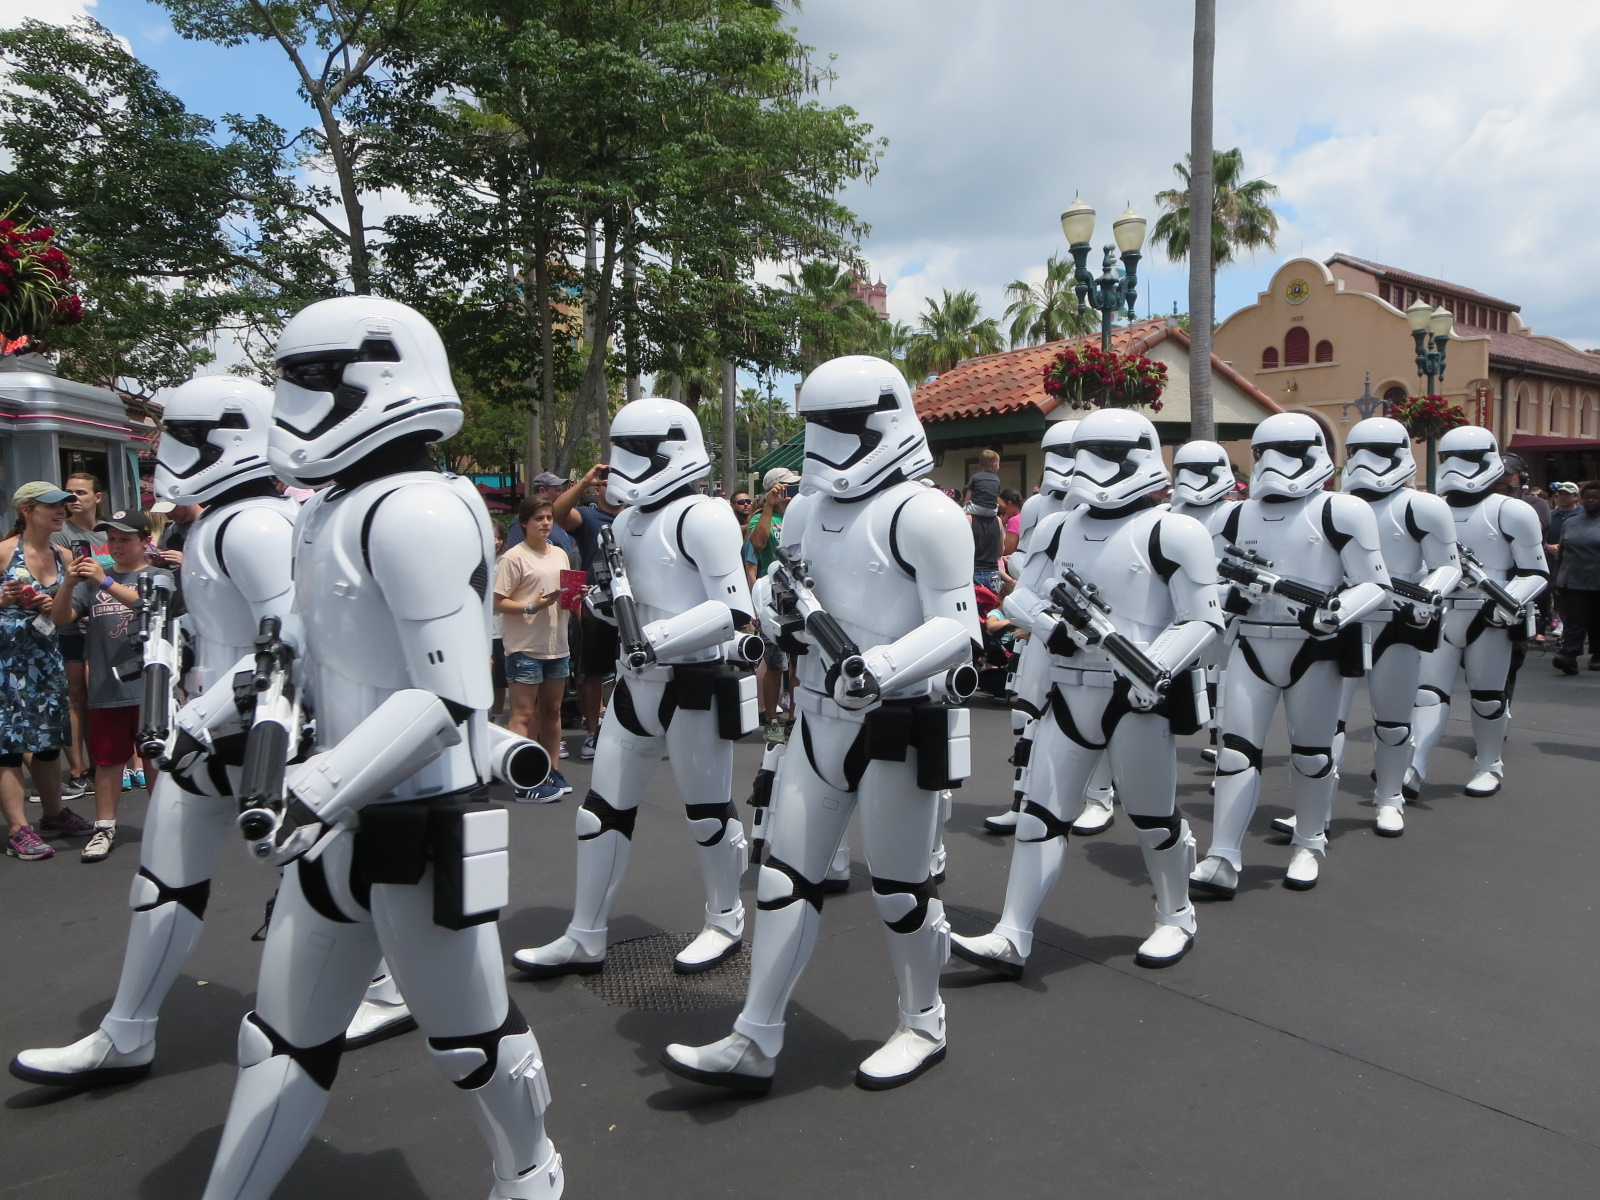 Image of Storm Trooper Mascots in high heat temperatures